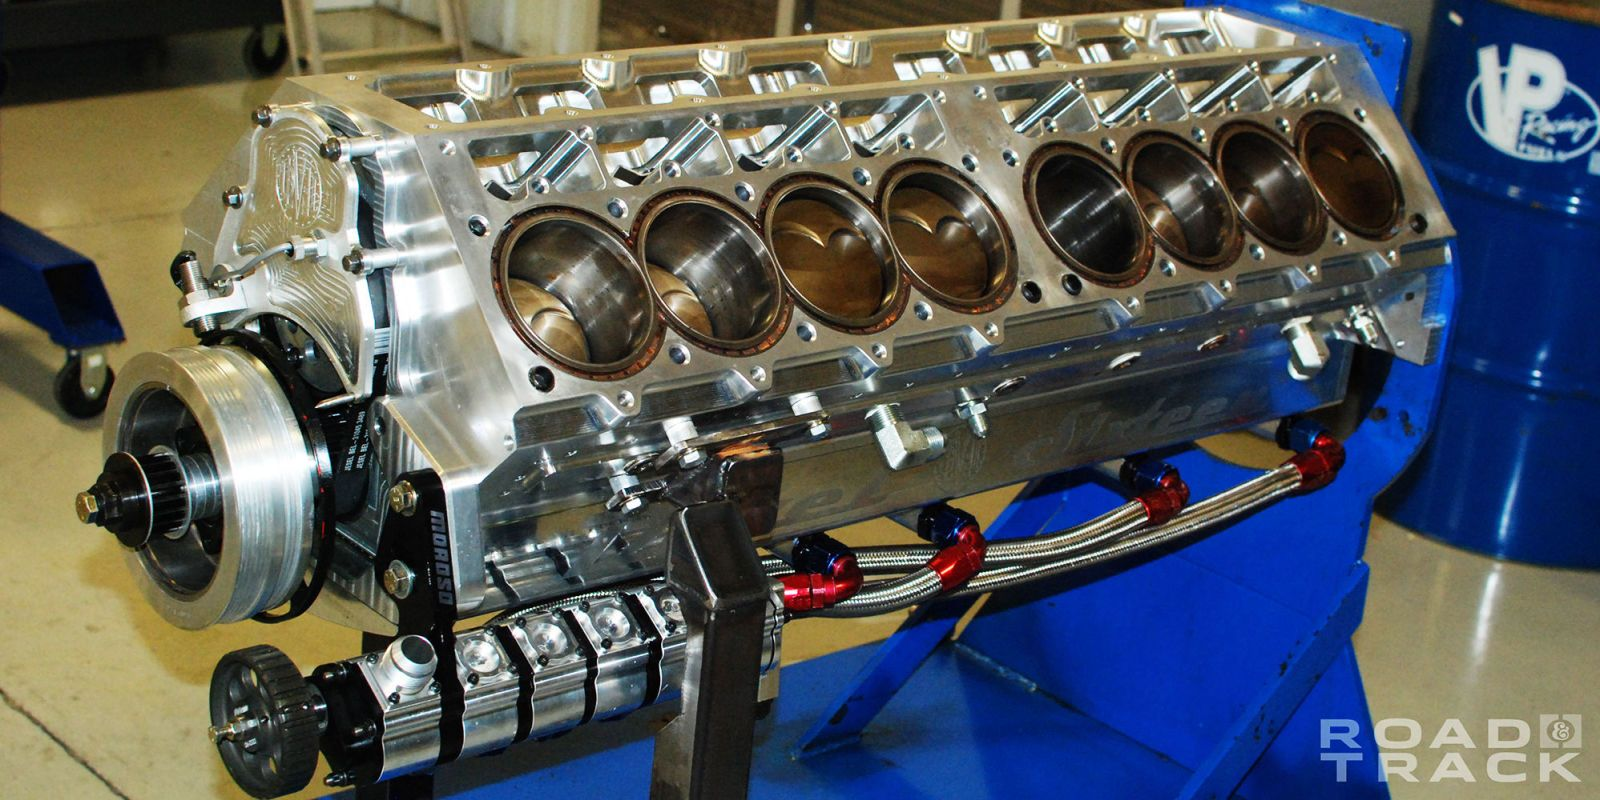 That Crazy 5000-hp, Quad-Turbo, 12.3-Liter V16 Is So Much More Than ...